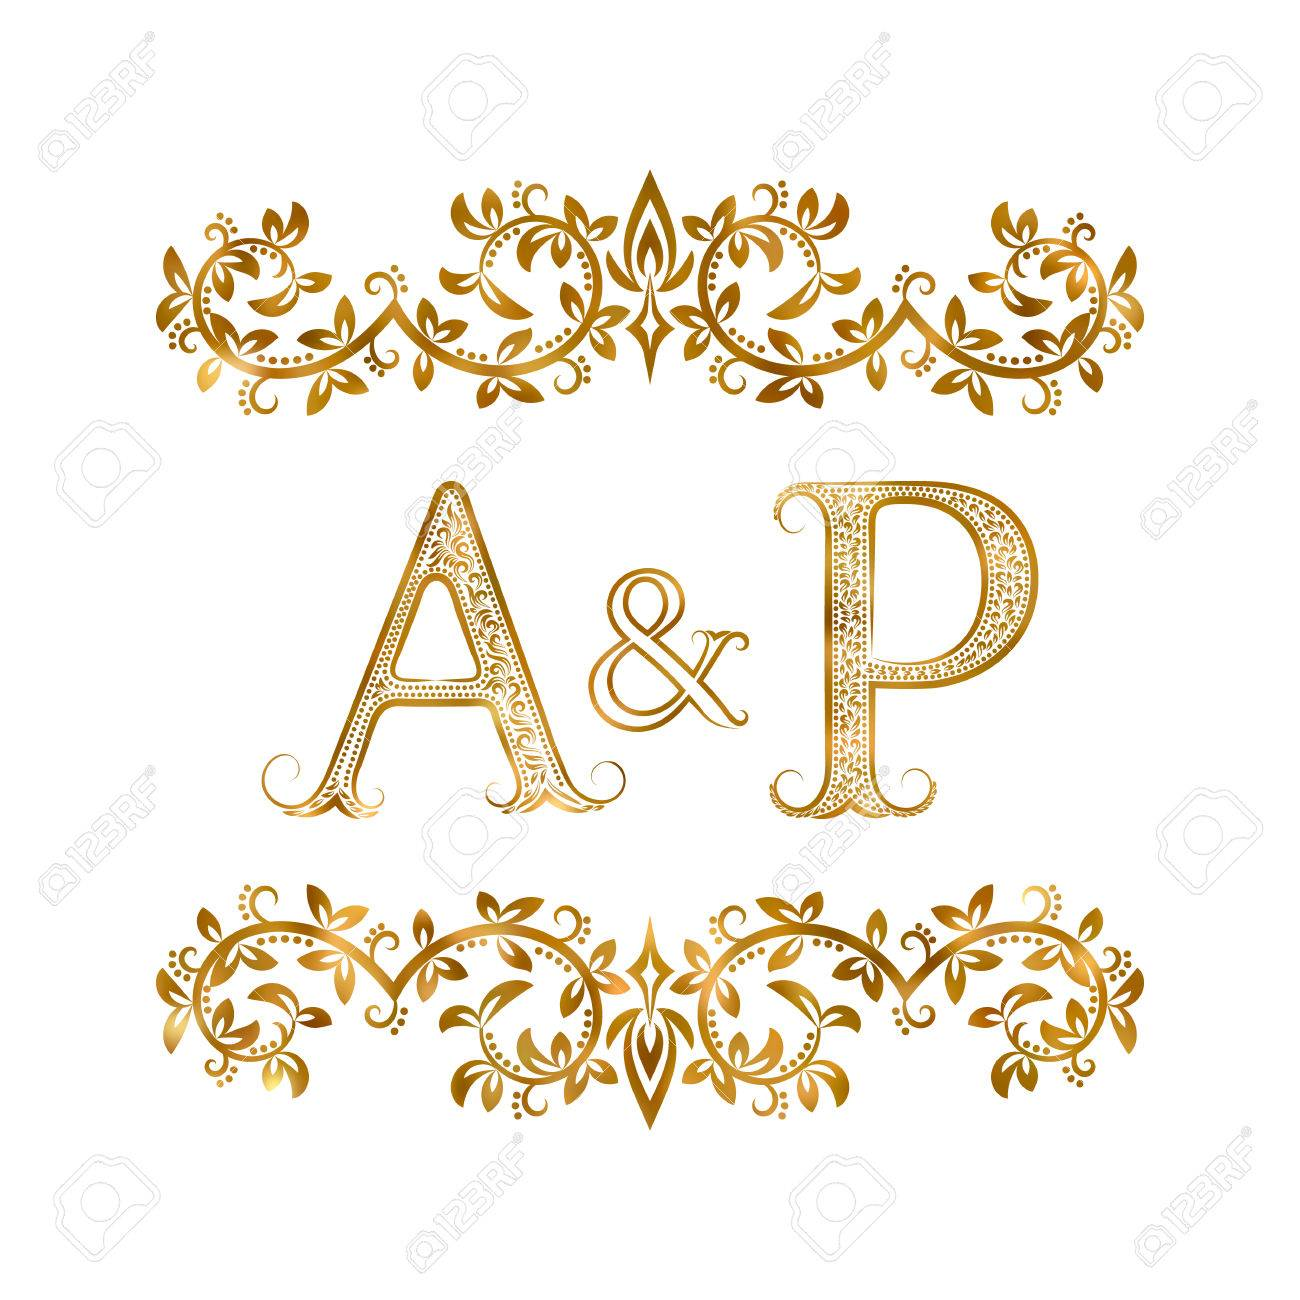 Ap Vintage Initials Symbol Letters A P Ampersand Surrounded